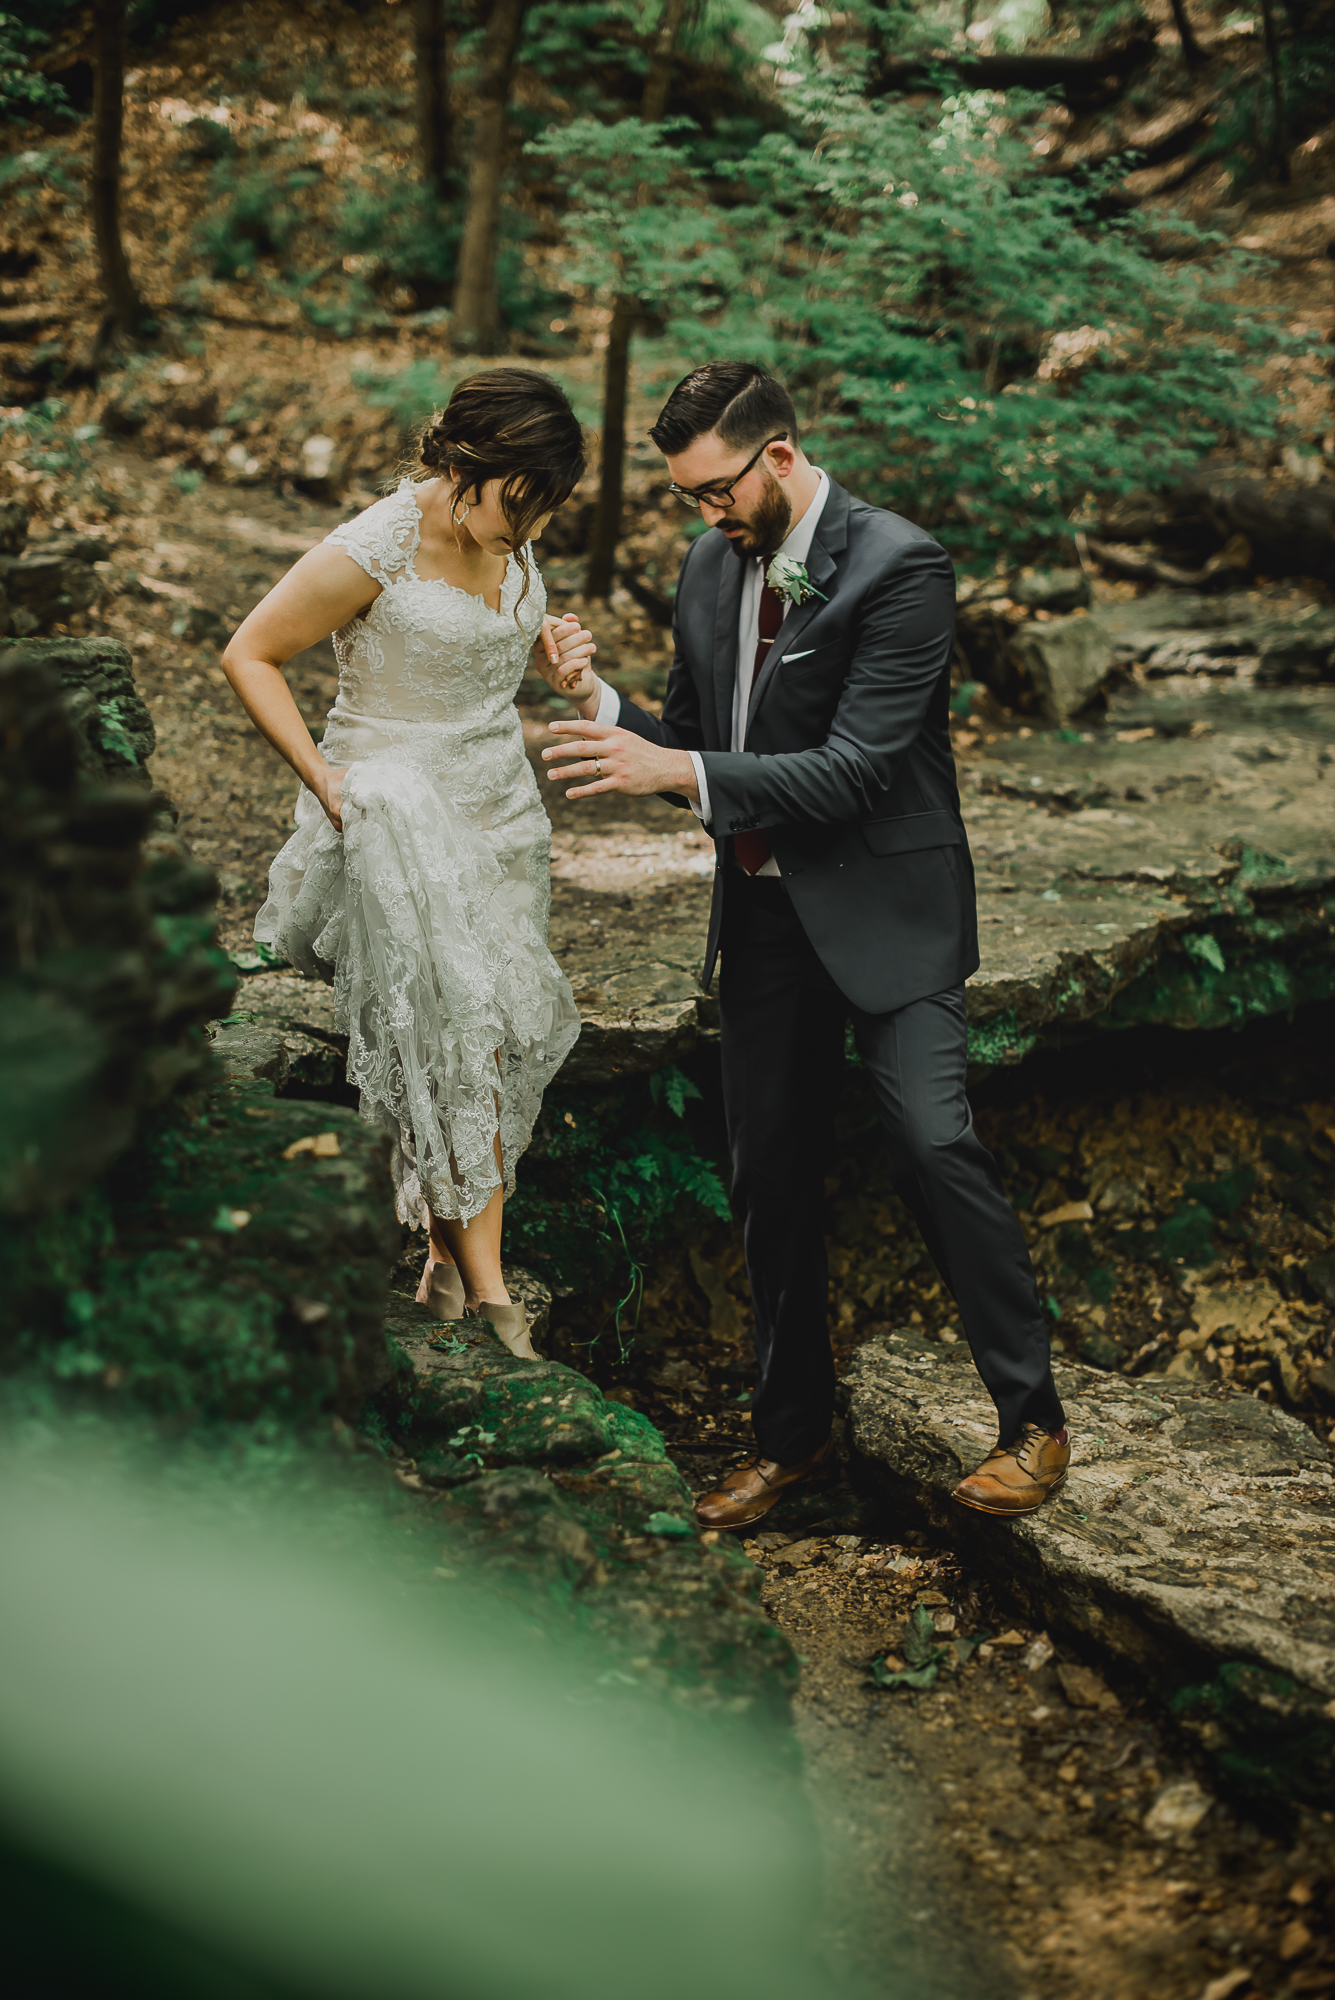 Melissa Cervantes Photography _ Kelsey + Ben Junebug Weddings Submission-77.jpg